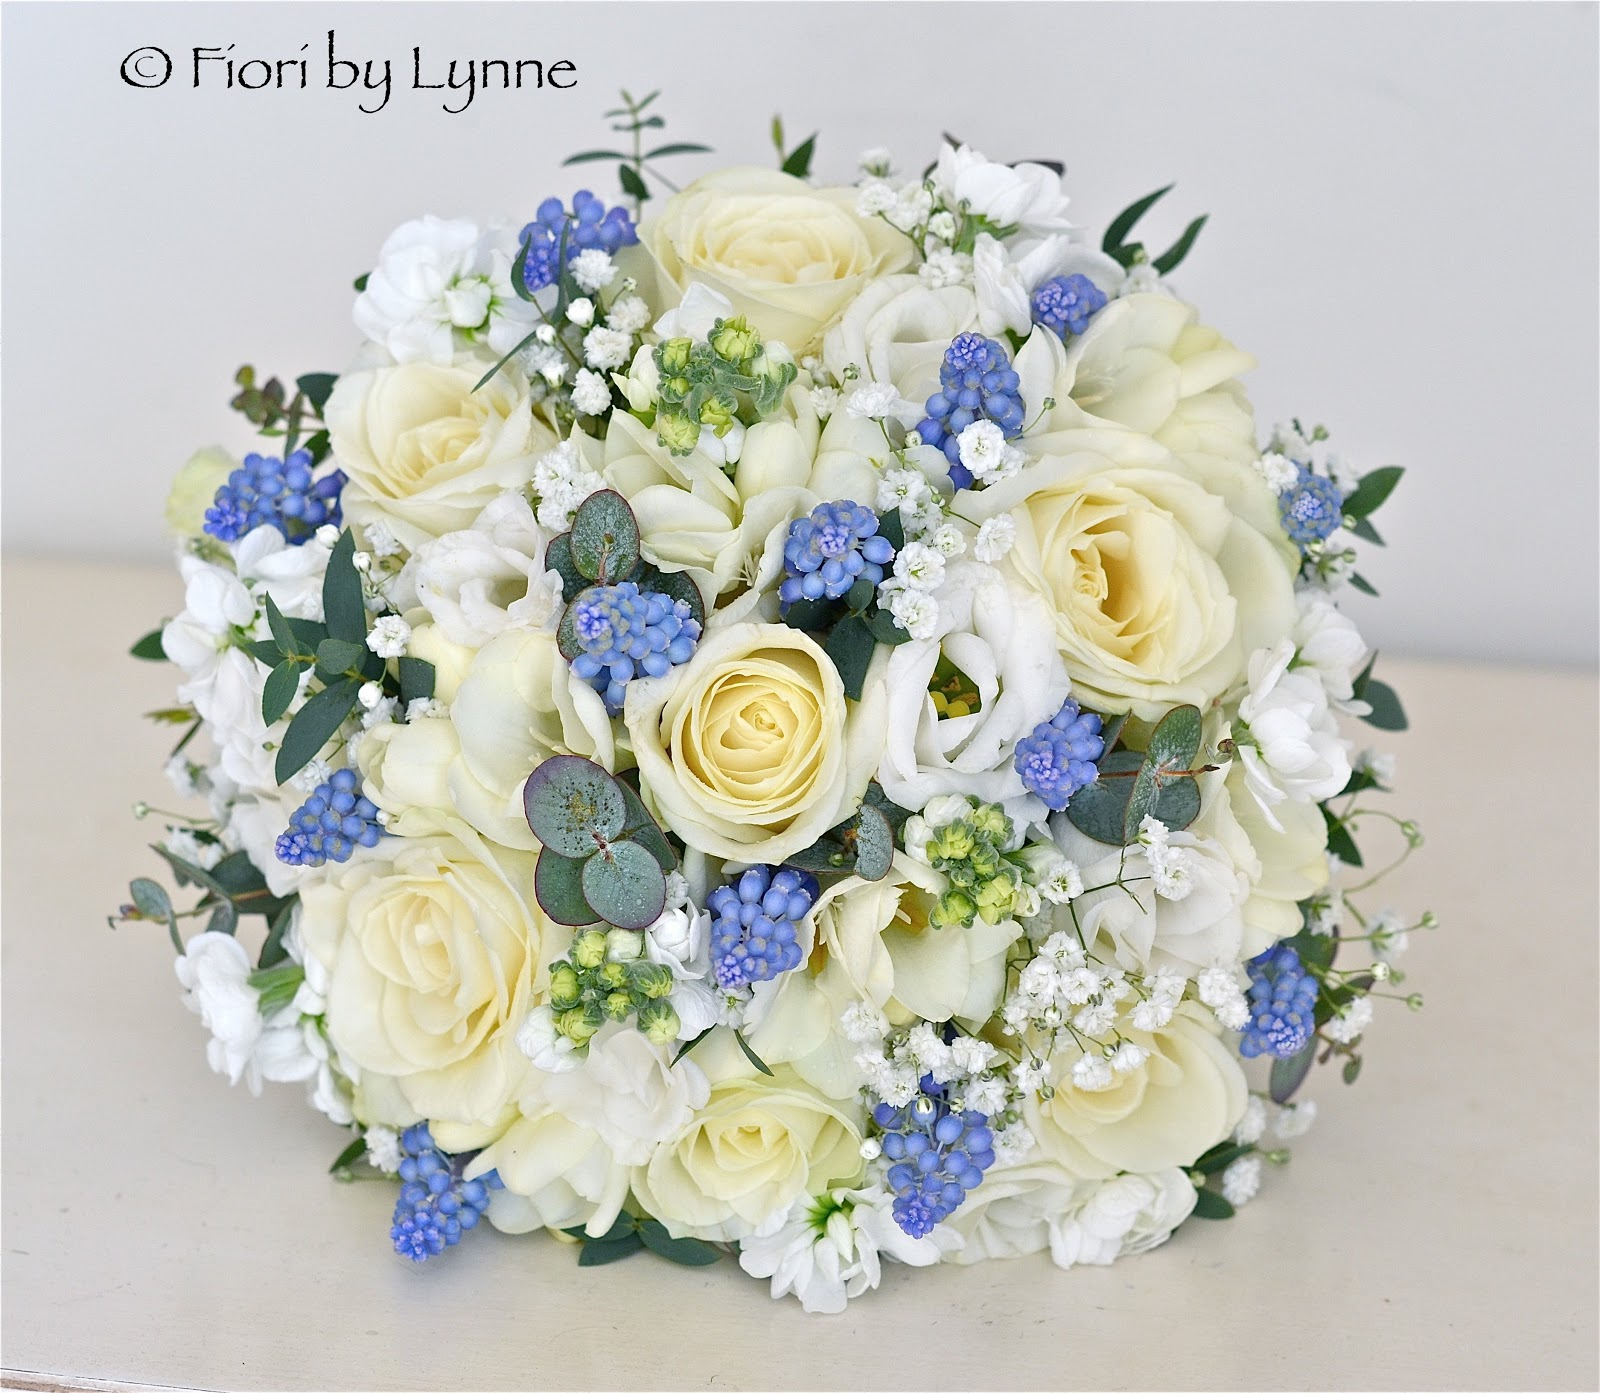 Wedding Flowers Blog: Carmen\'s Blue and White Spring Wedding Flowers ...